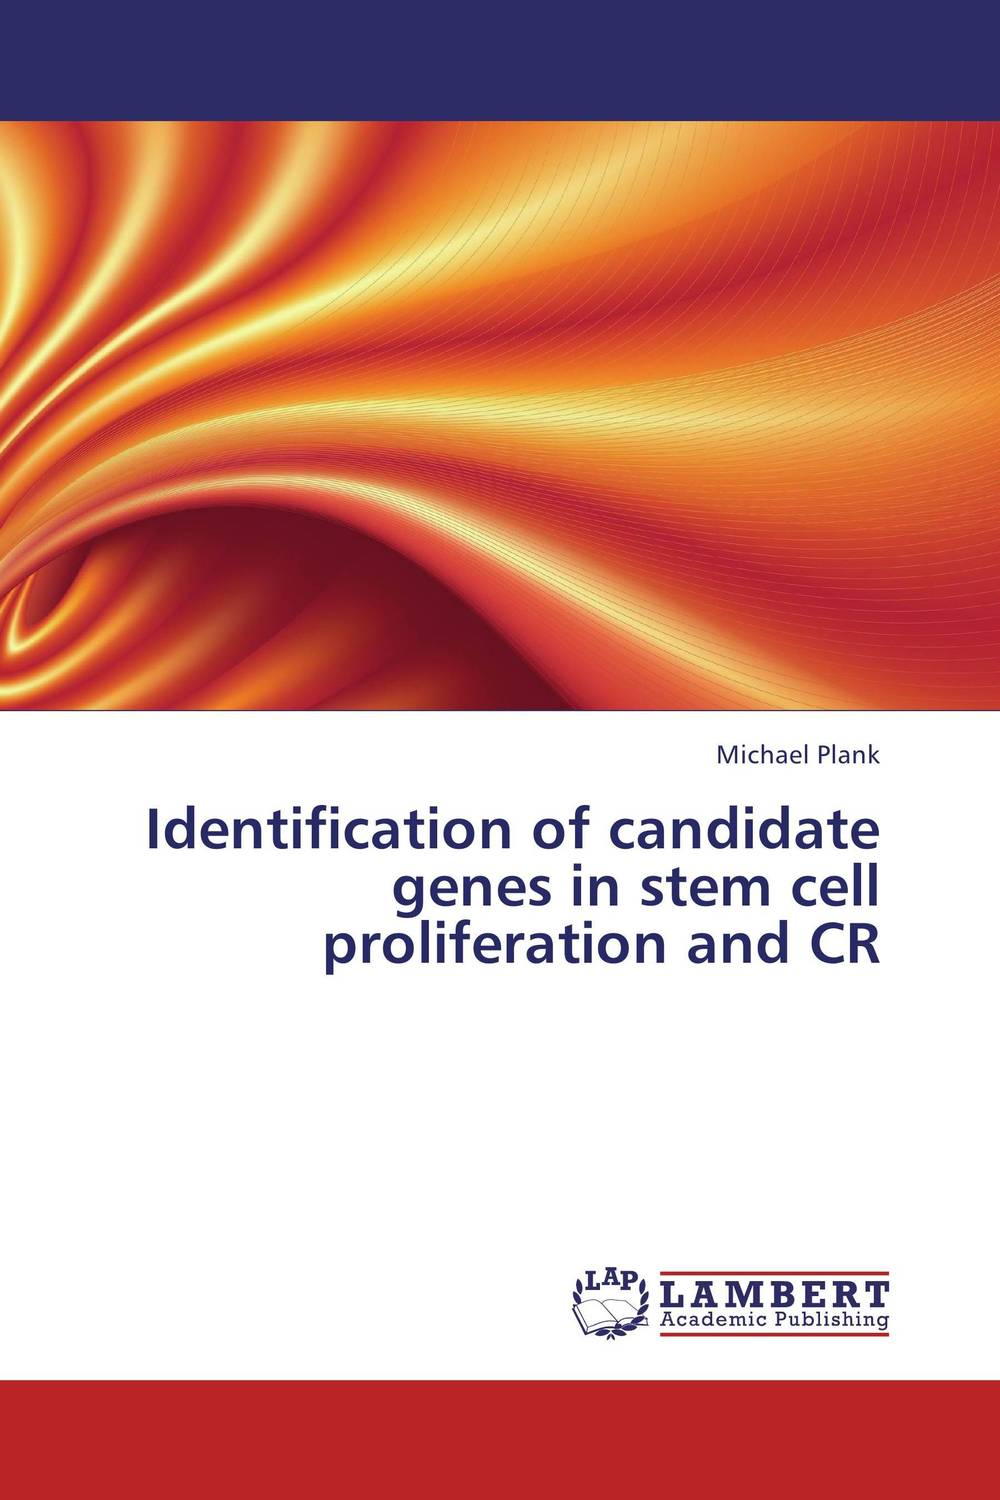 Identification of candidate genes in stem cell proliferation and CR polymorphisms at candidate genes for disease resistance in chicken